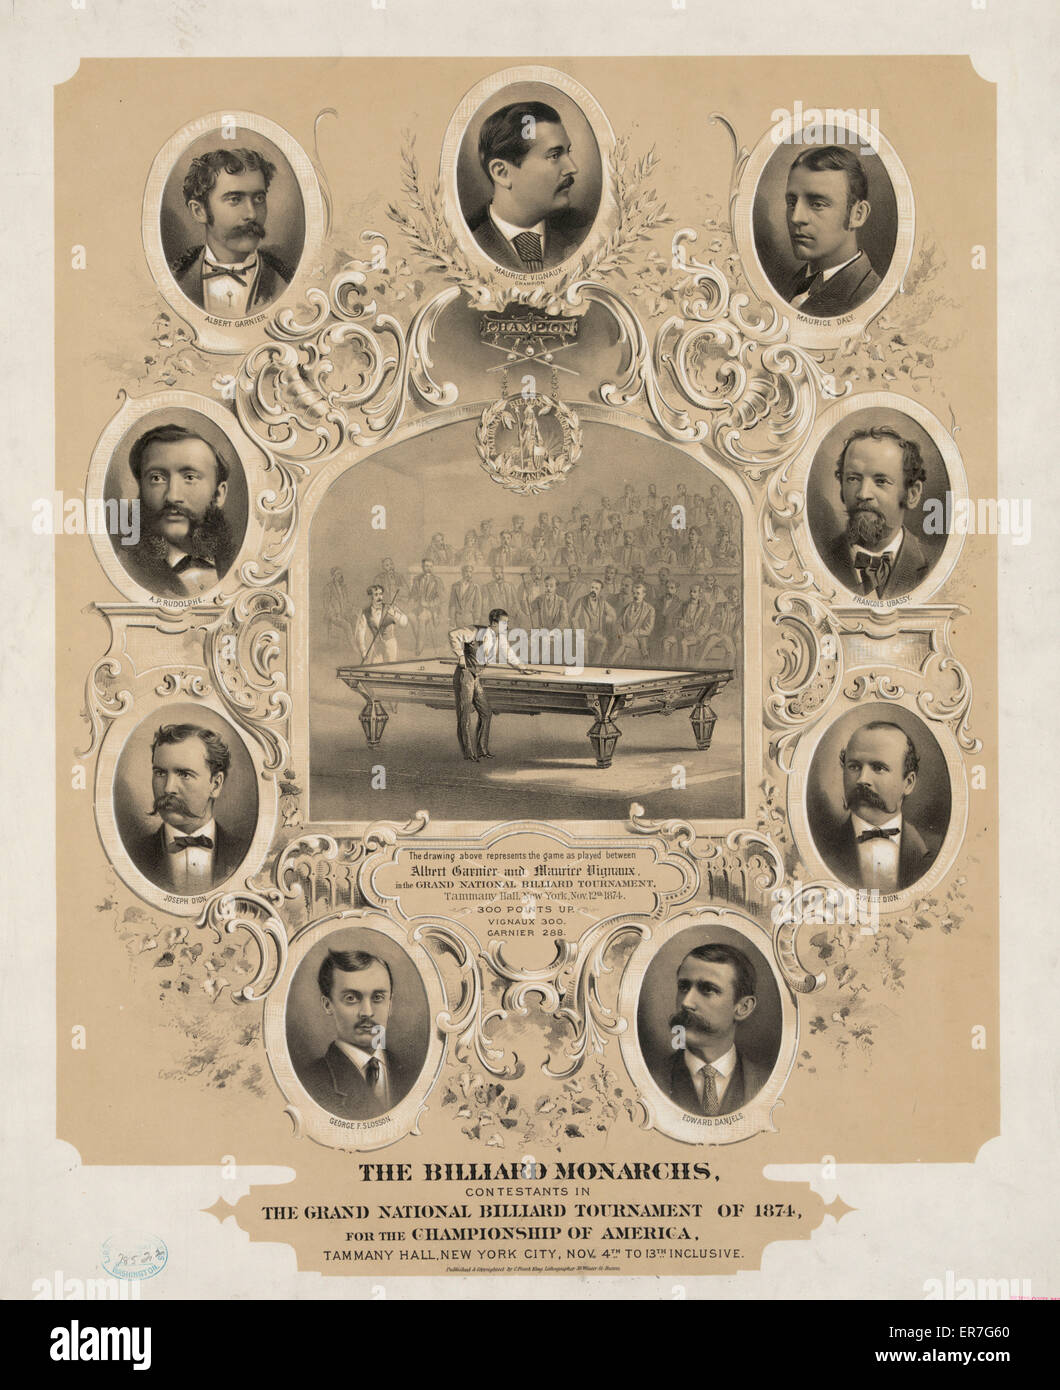 The billiard monarchs, contestants in the grand national billiard tournament of 1874, for the championship of America. - Stock Image